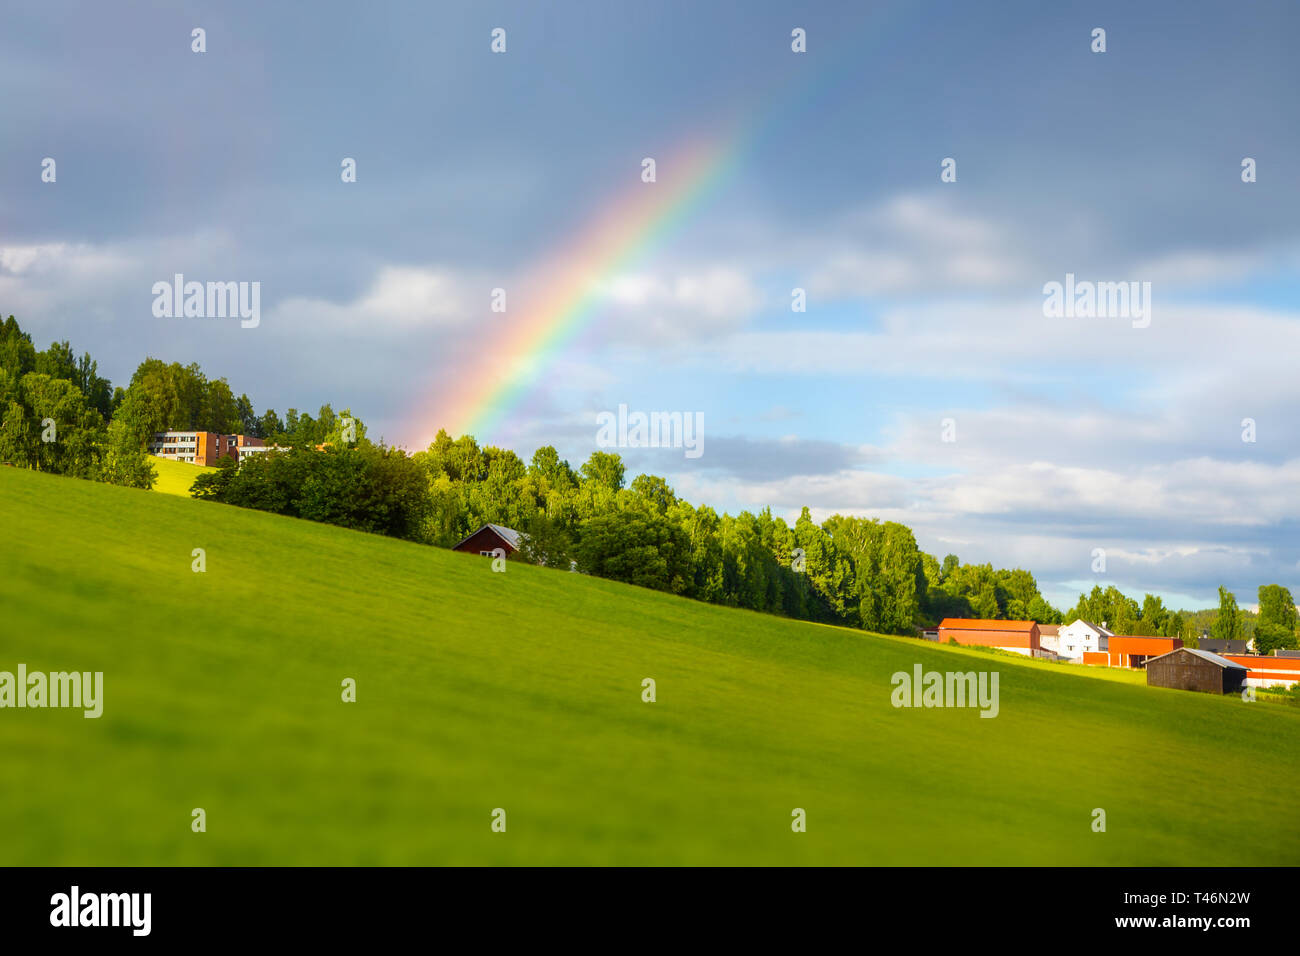 Rainbow near the house. Traditional colored wooden house in Norway at summer day. Country houses in village in Norway. - Stock Image